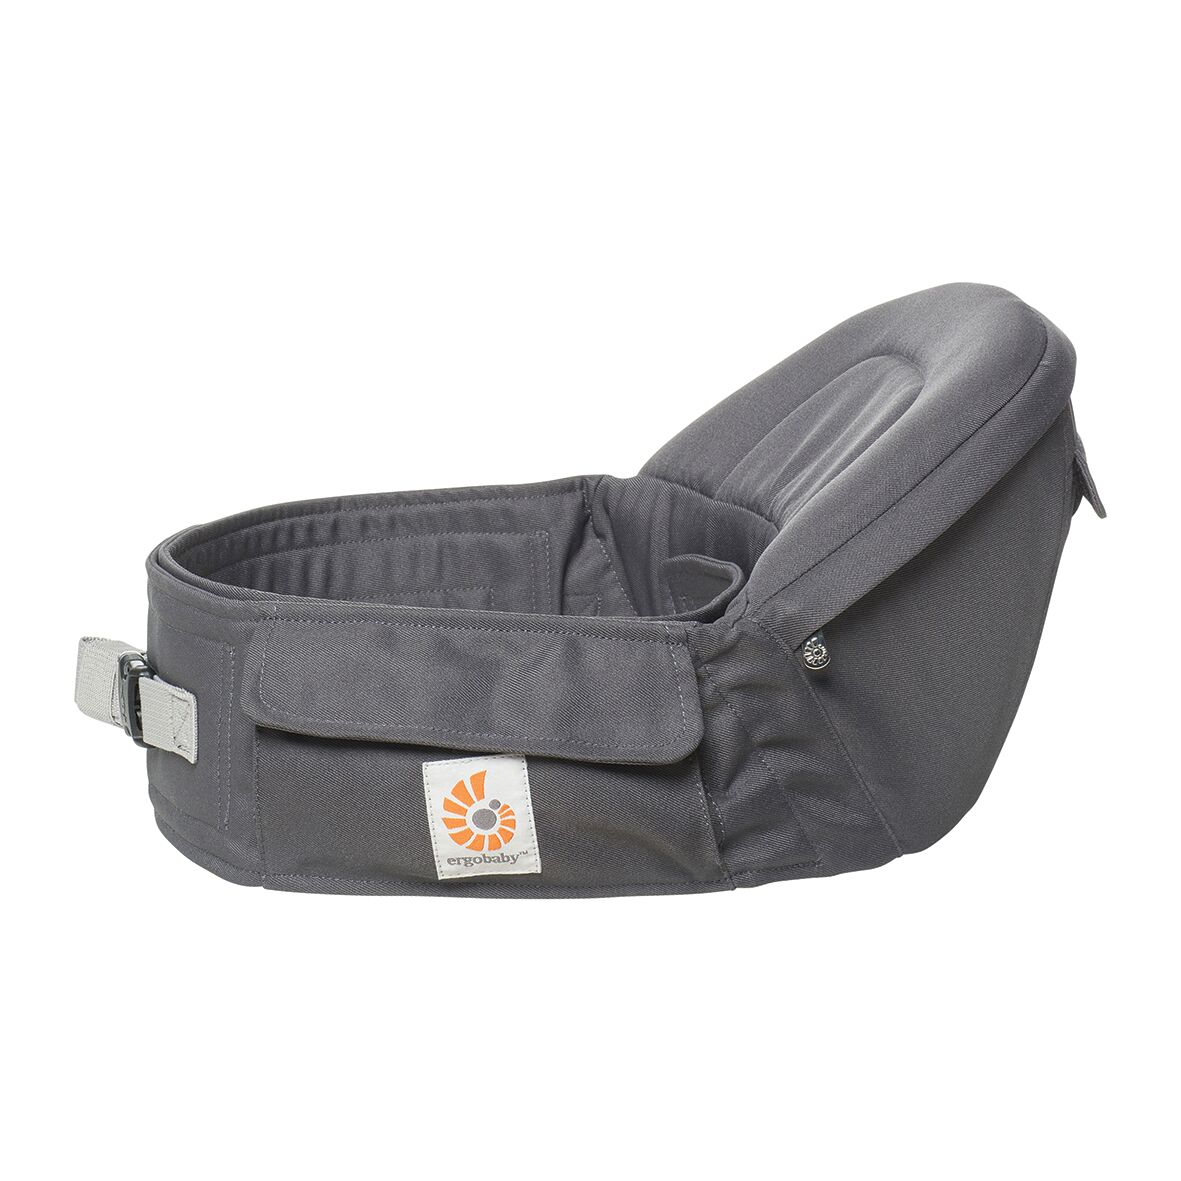 8d3e327bb48 Ergobaby Mesh Hip Seat  Carrier (6 in 1 ) – Carbon Grey. Availability  Out  of stock. prev